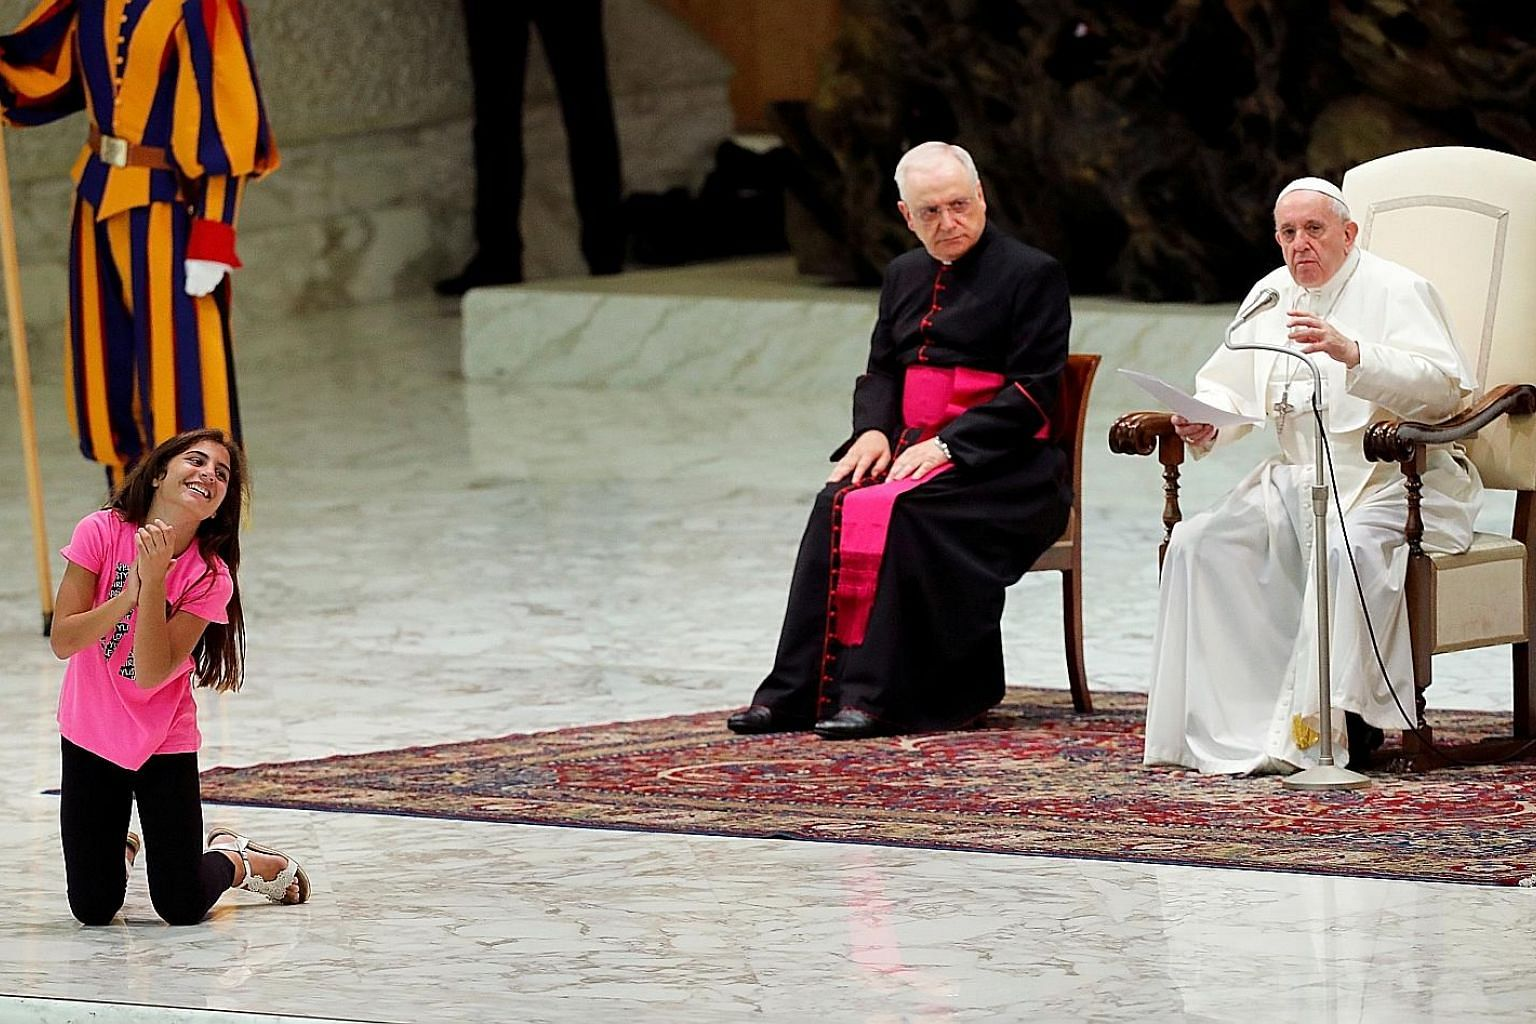 The girl pranced back and forth in front of Pope Francis, jumped, and occasionally let go a loud, sharp clap, as he led the weekly general audience in Paul VI Hall at the Vatican yesterday. Pope Francis signalled to security to let her be. The girl r